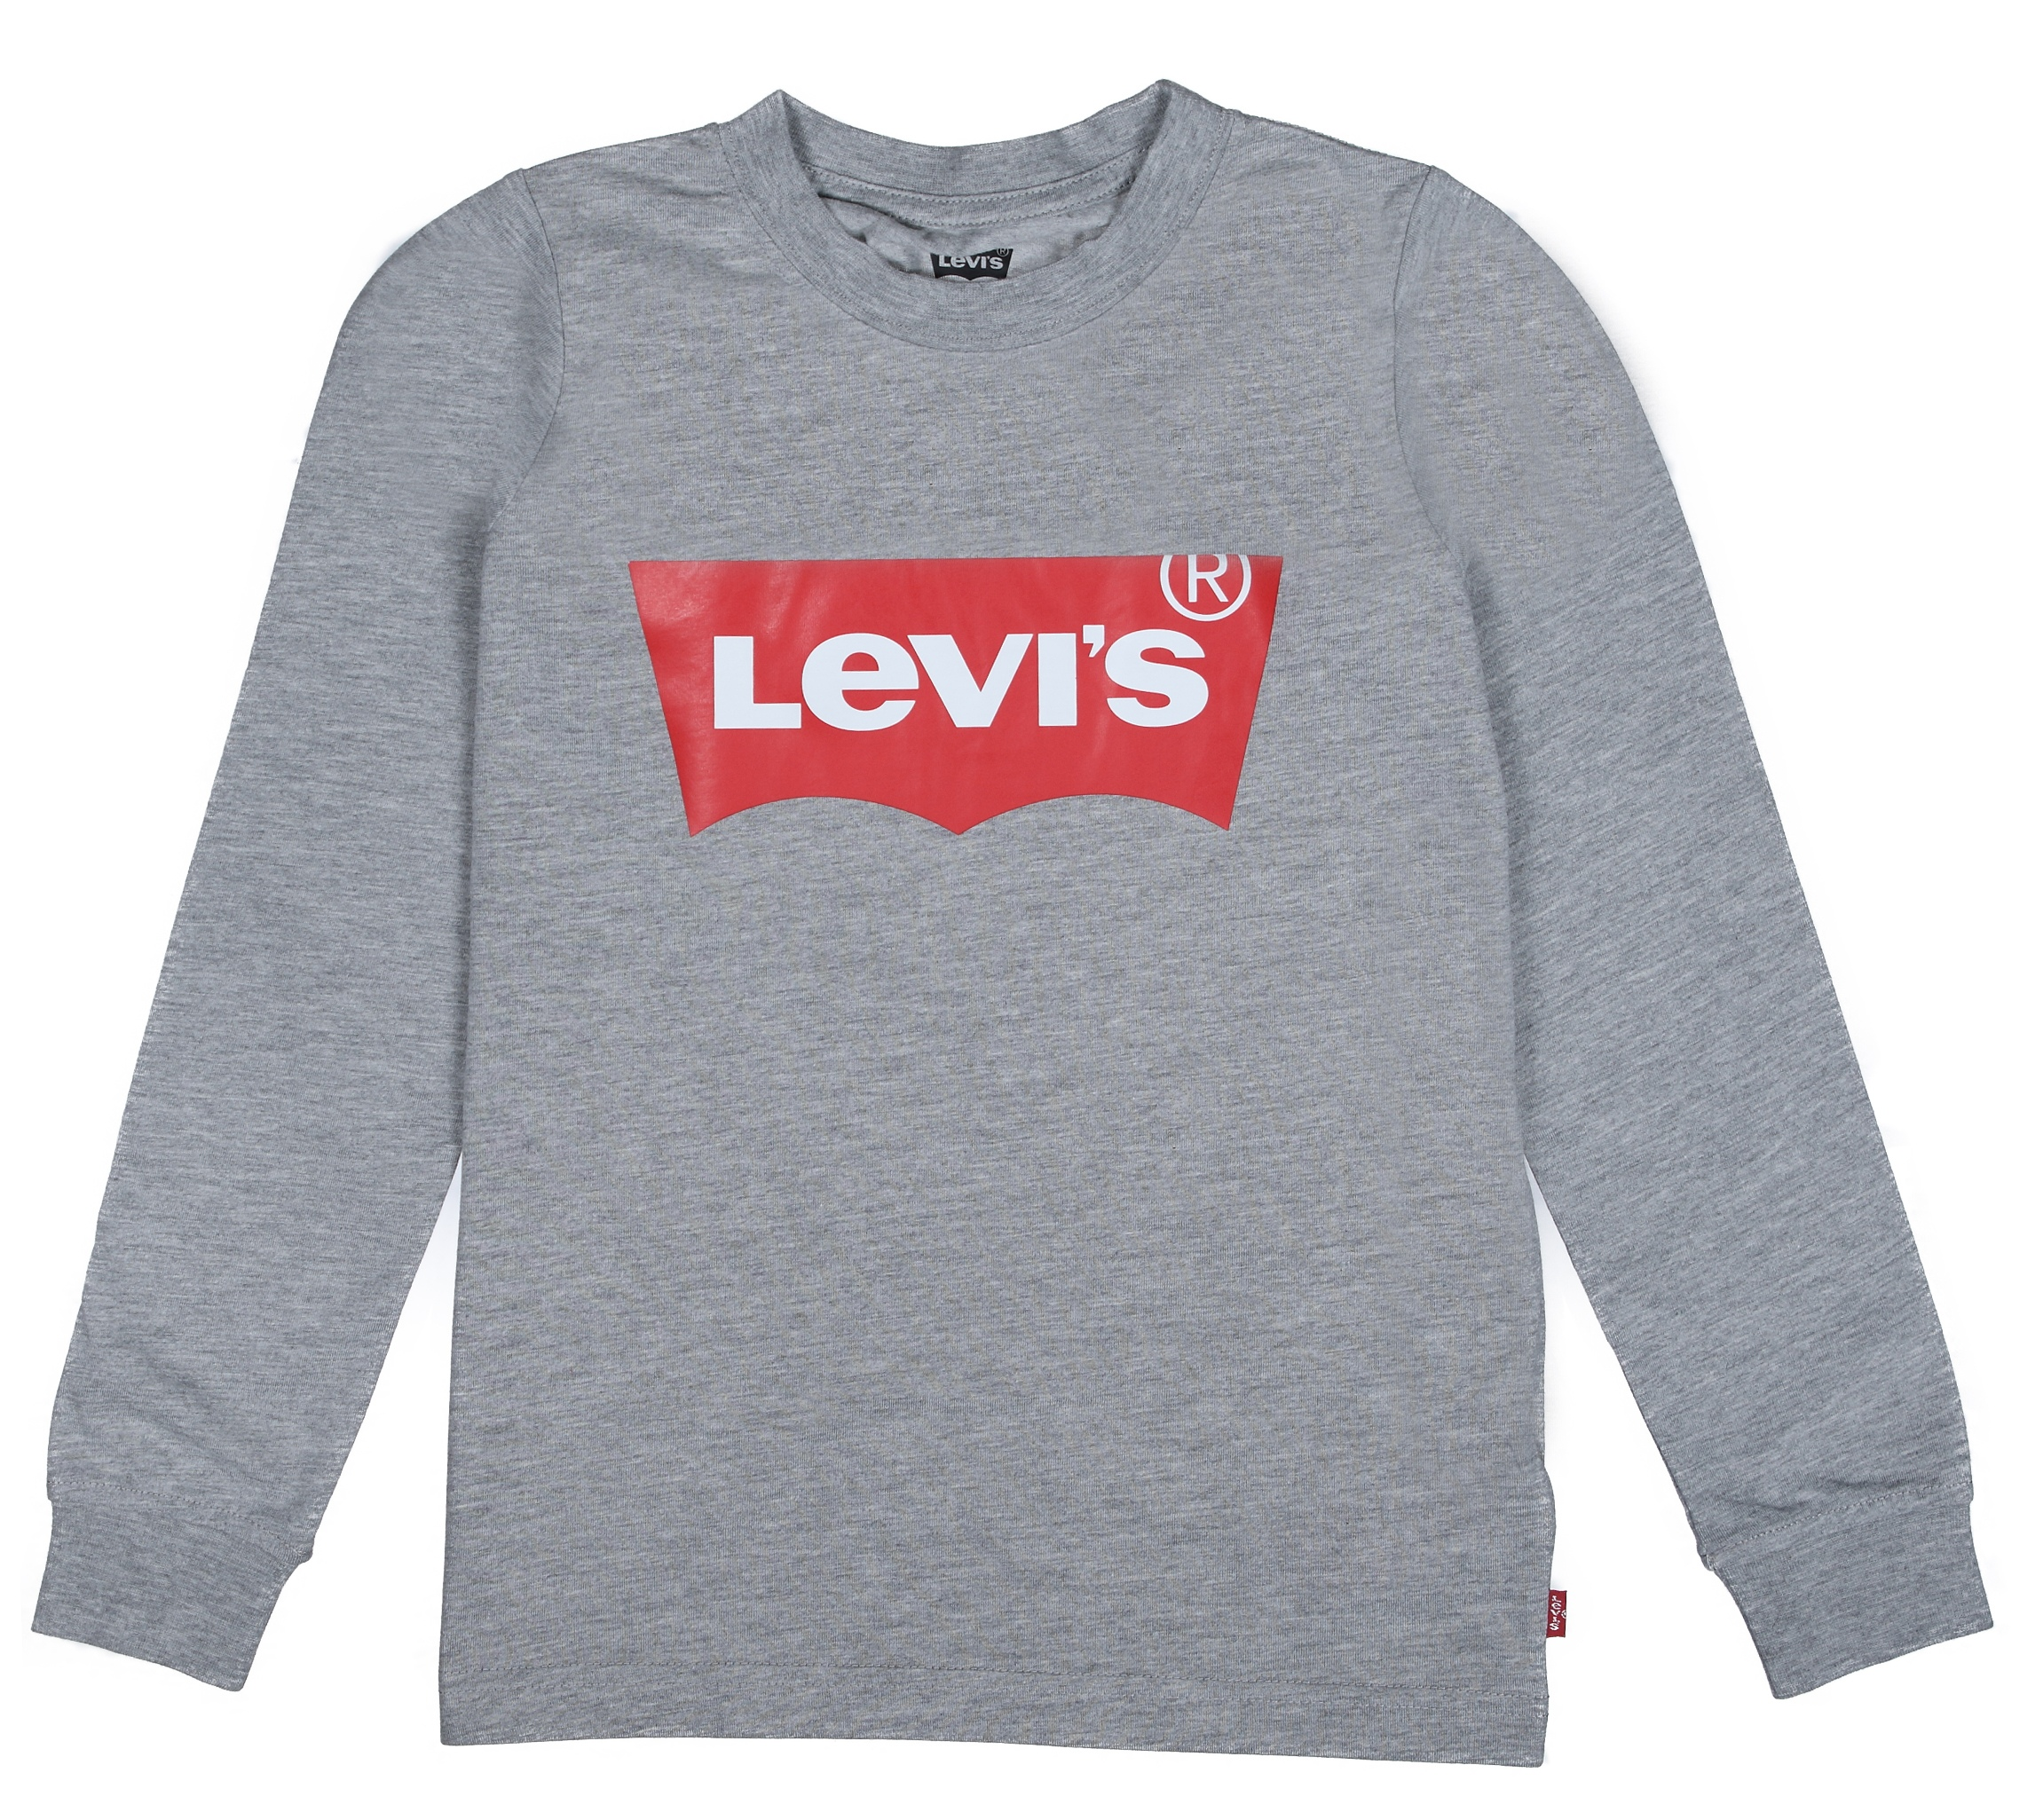 https://www.leadermode.com/183736/levi-s-kids-8646-306-grey-heather.jpg